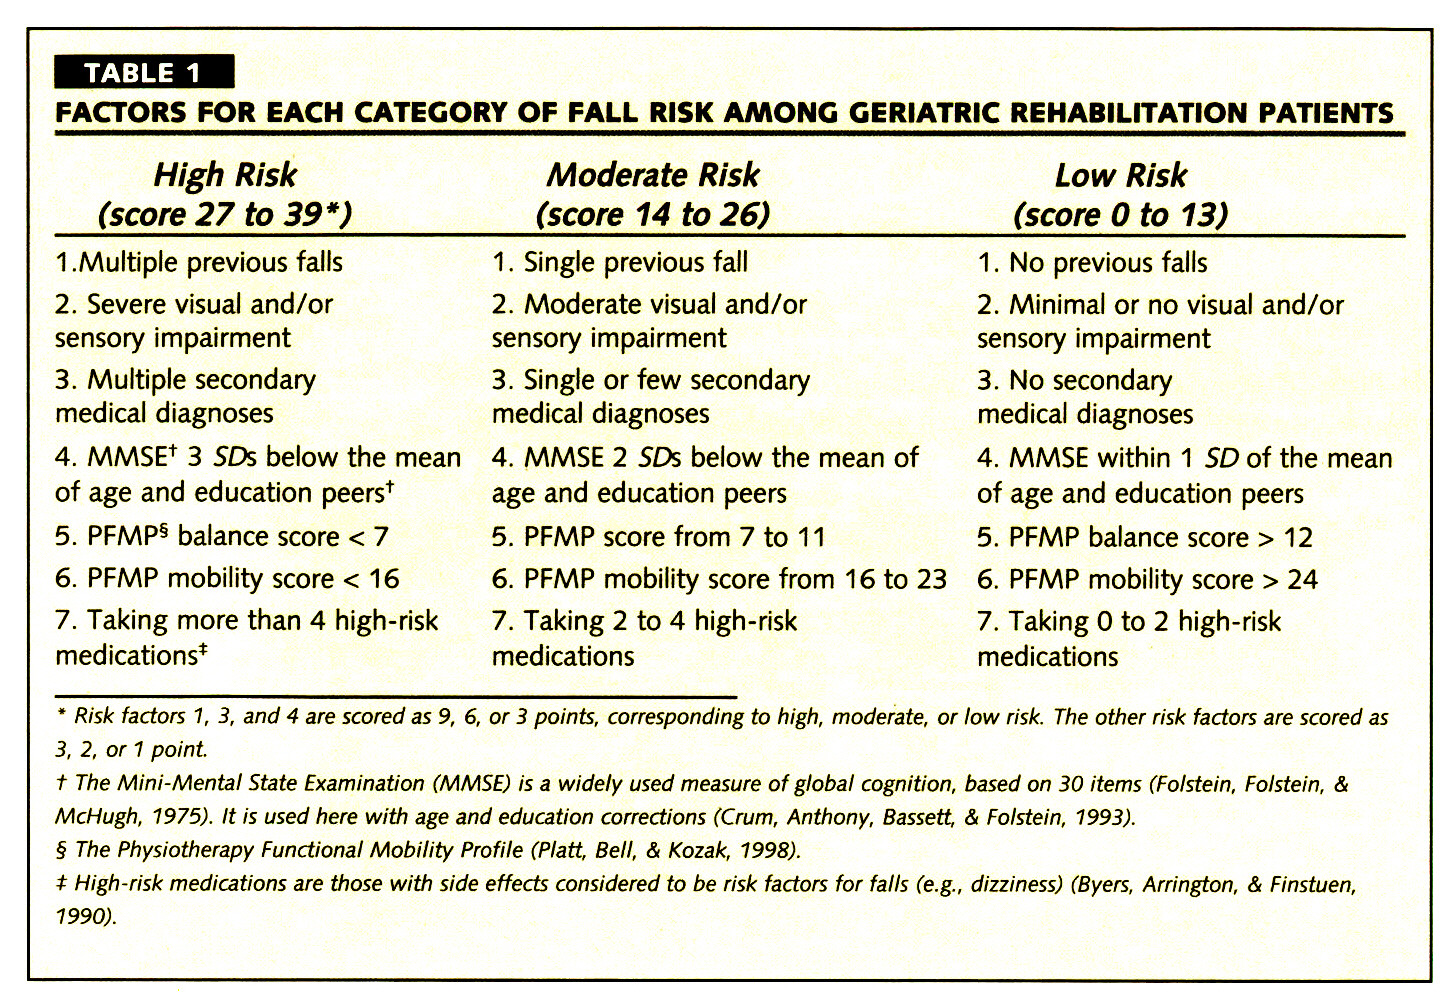 TABLE 1FACTORS FOR EACH CATEGORY OF FALL RISK AMONG GERIATRIC REHABILITATION PATIENTS